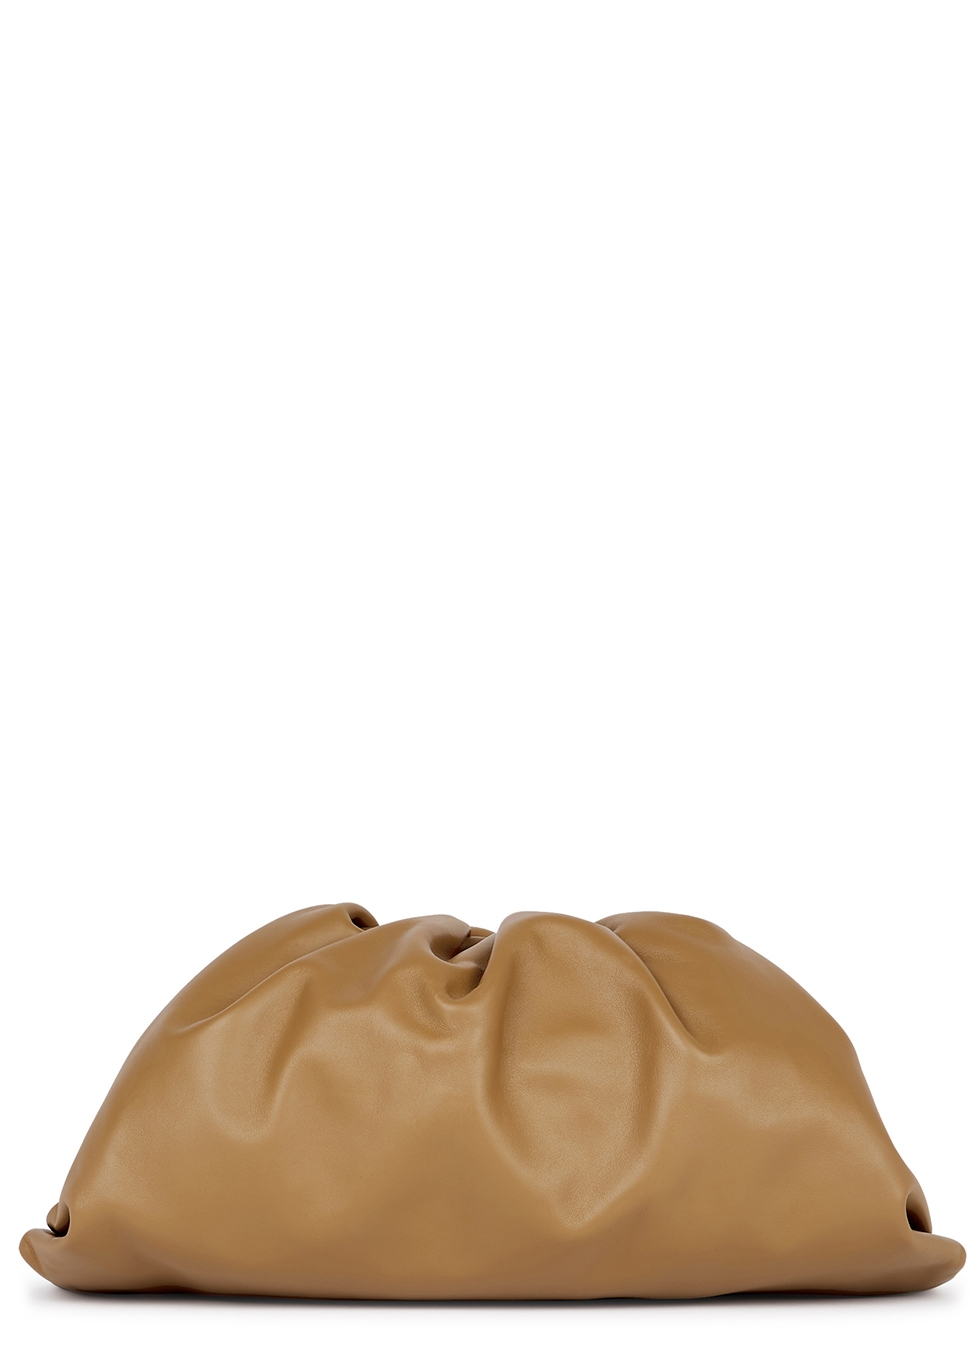 The Pouch camel leather clutch